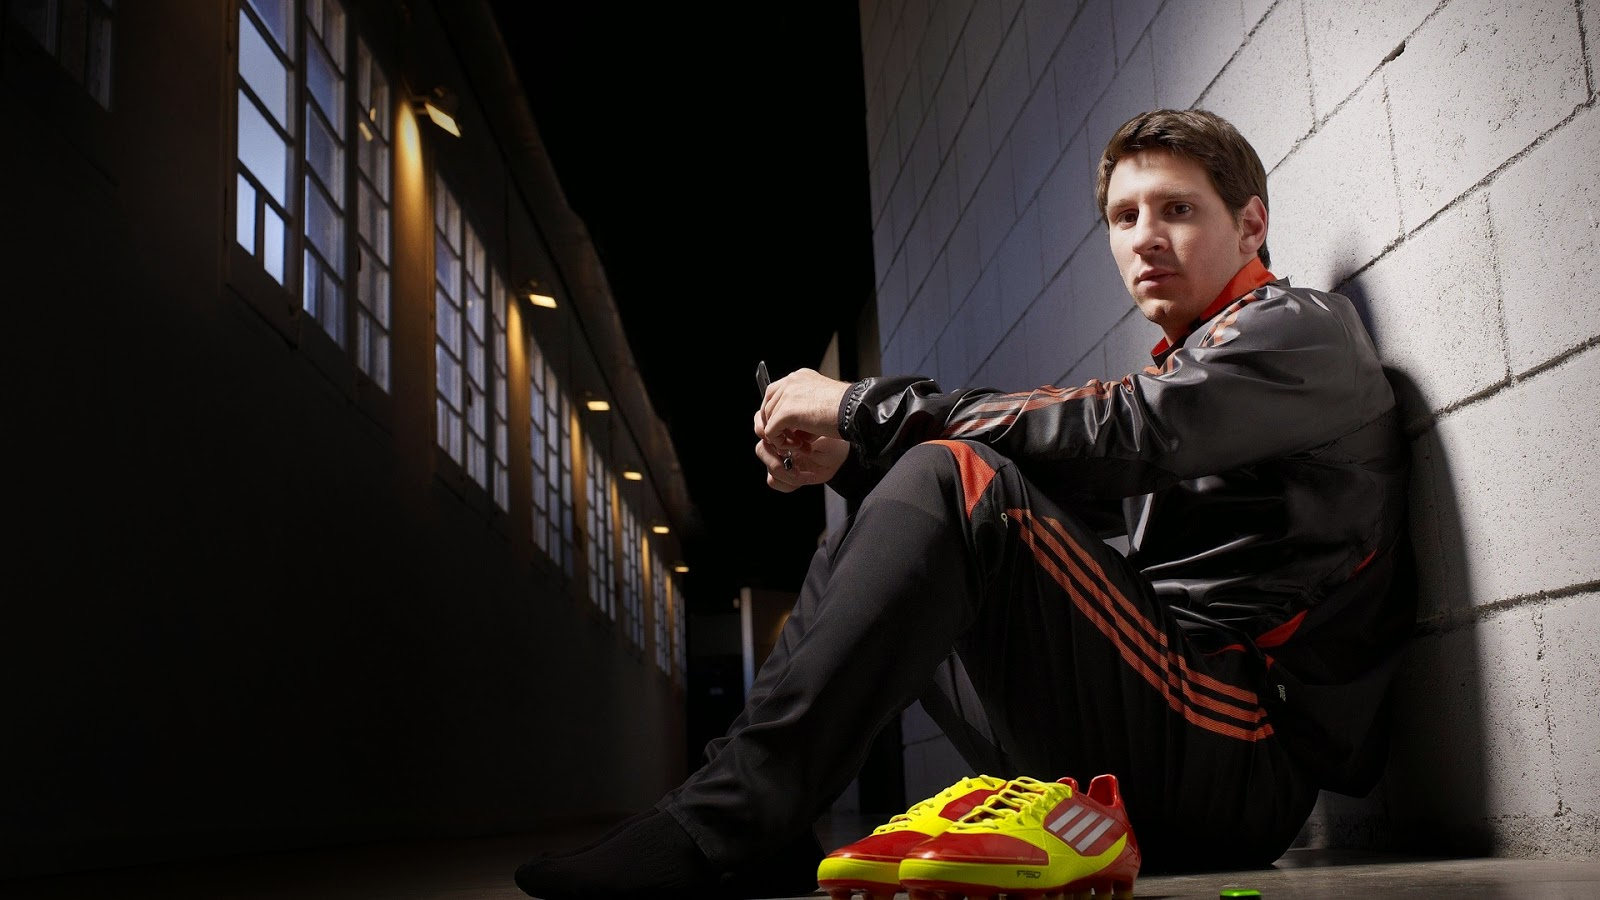 Pitbull Wallpapers 3d Lionel Messi New Stylish Hd Wallpaper 2014 All About Hd